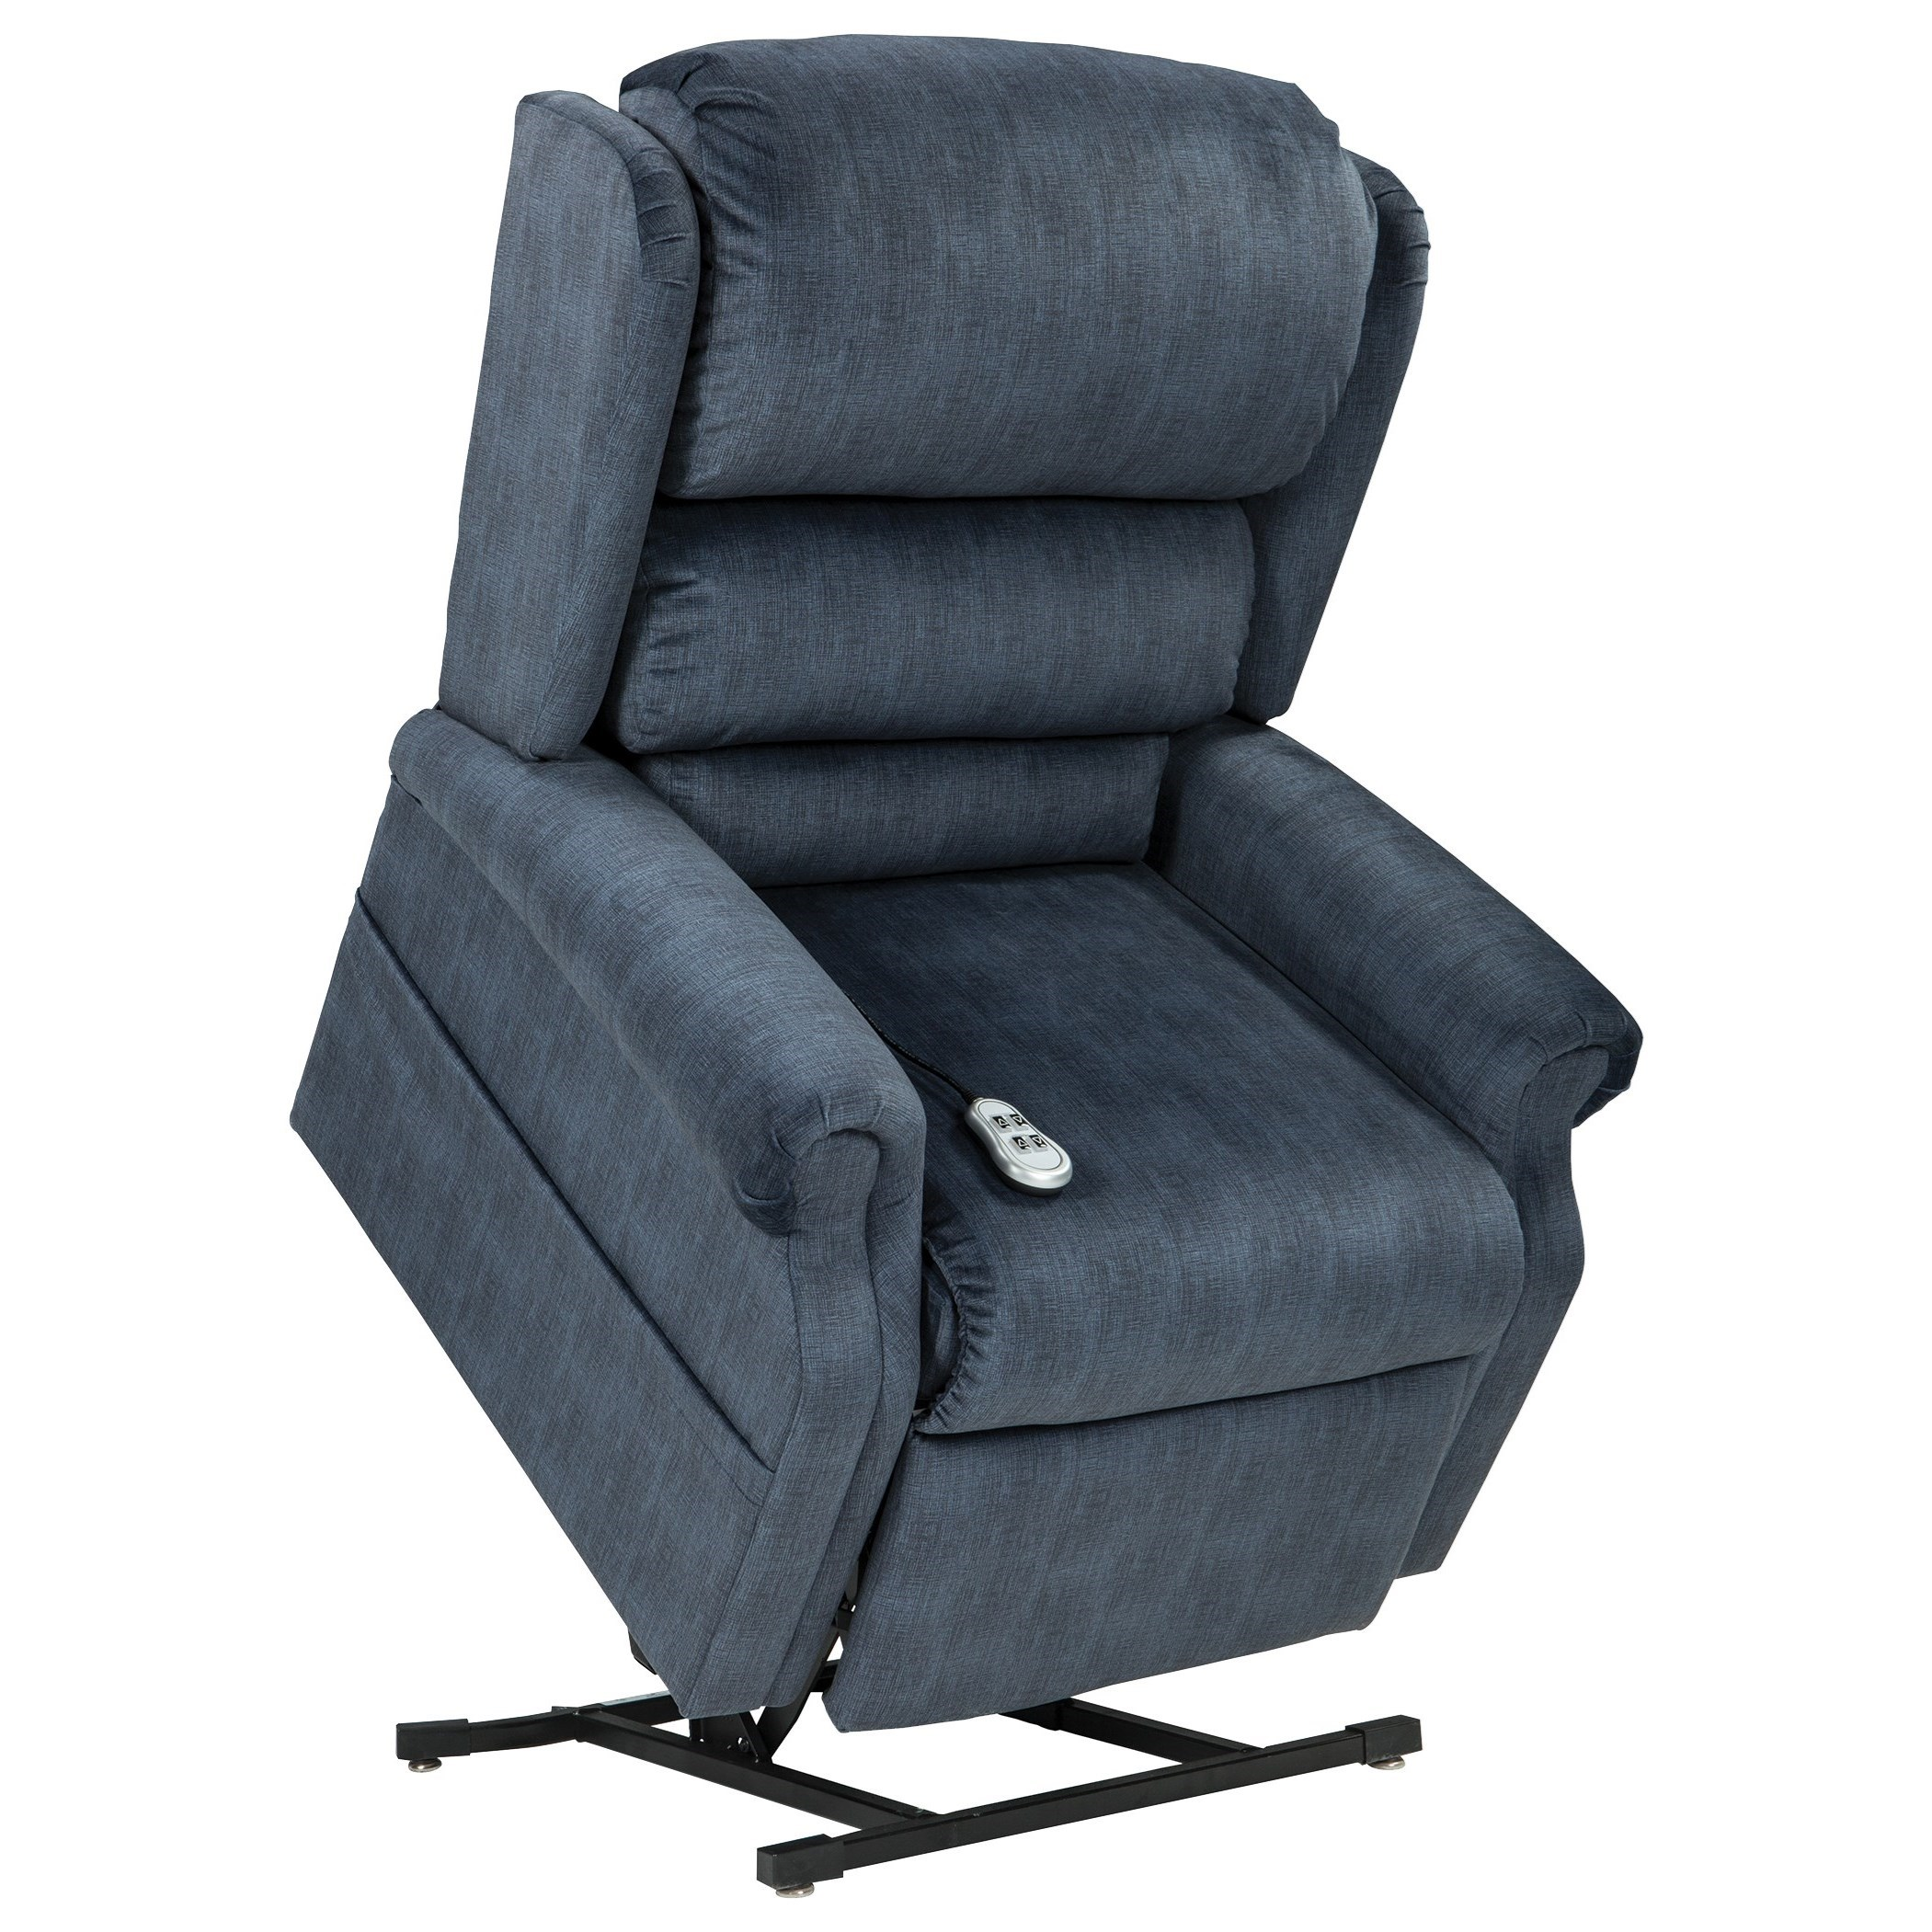 Lift Chairs Cosmo Chaise Lounger by Windermere Motion at Lapeer Furniture & Mattress Center